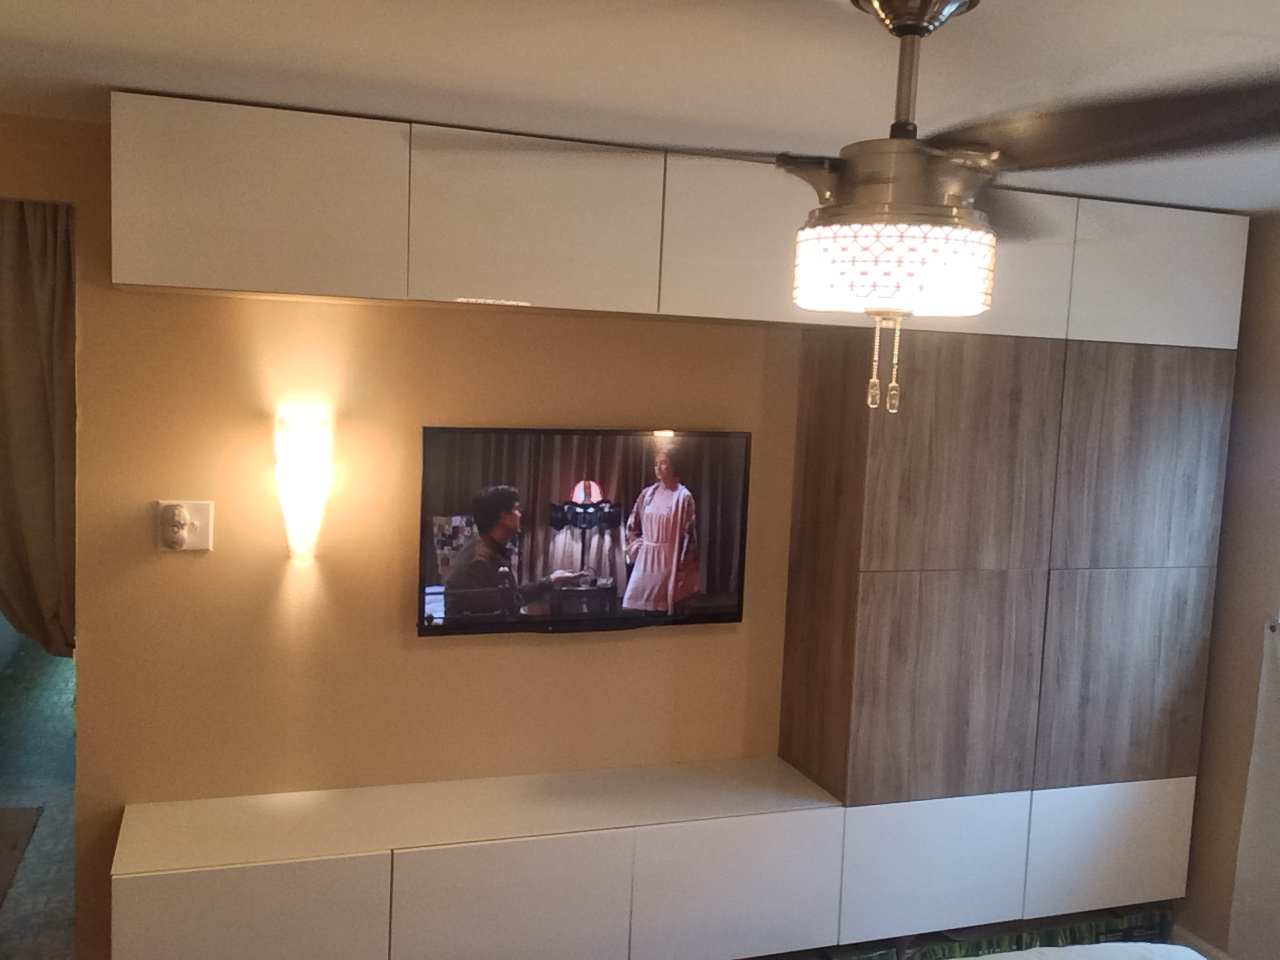 Install Ceiling Fan In Mobile Home Peatix